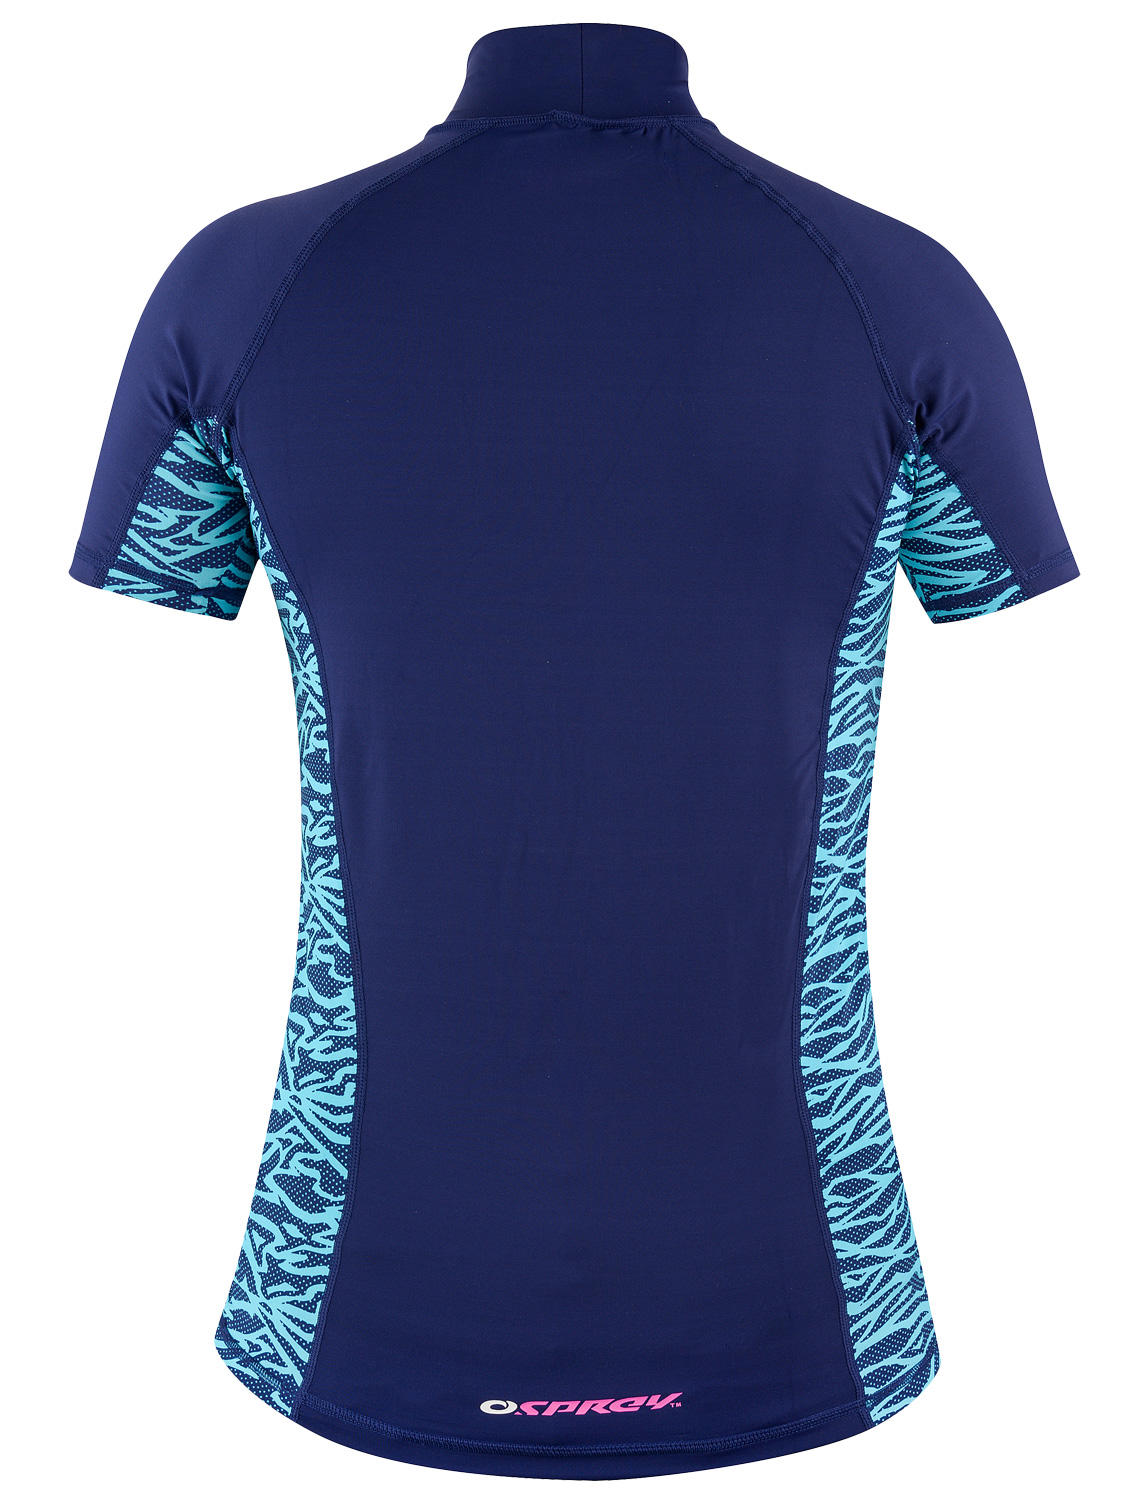 Osprey ladies short sleeve rash vest womens surf t shirt for Uv protection t shirt